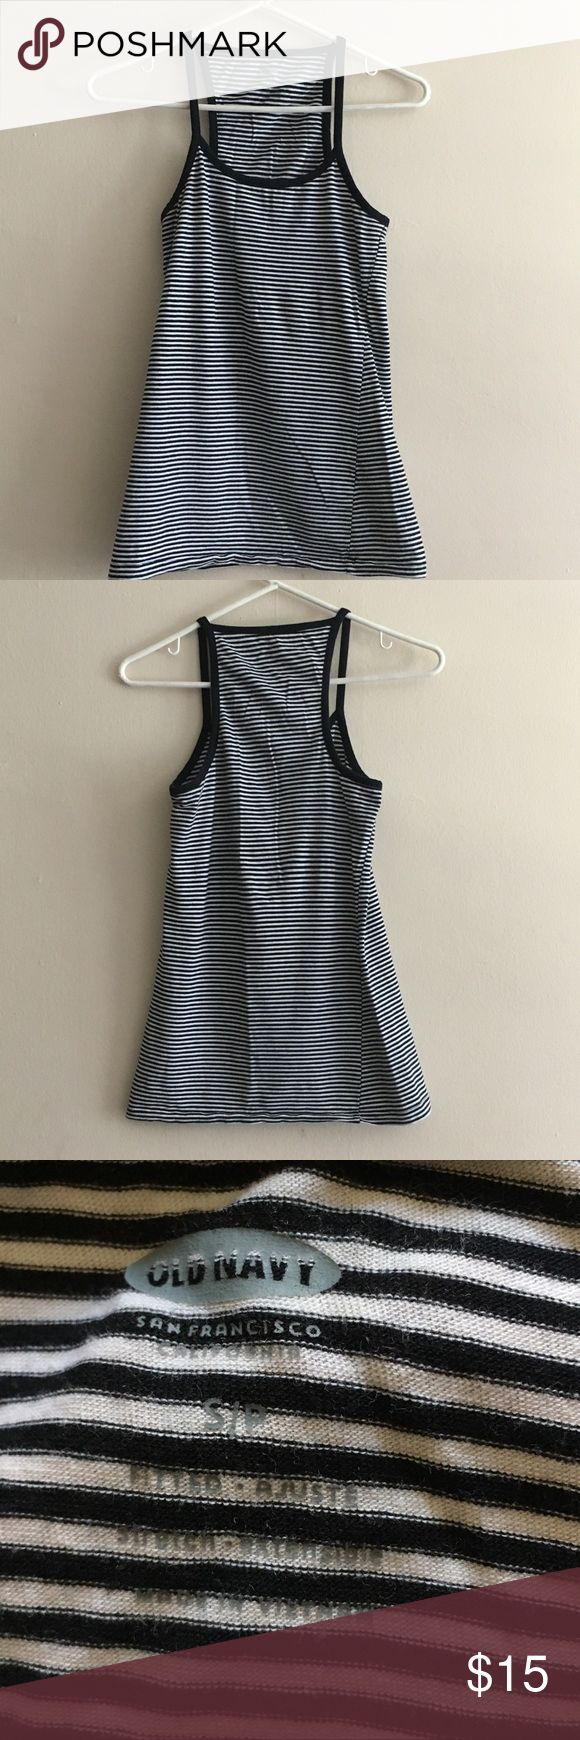 """Old Navy Striped tank top Size small Old Navy Striped tank top Size small This is a simple, classic, versatile tank top. You can wear this under a button down shirt or a jean jacket for a fun look.  Measurements Length 25.5"""" Bust 30"""" with stretch to 36""""  Opening at bottom: 33"""" with stretch up to 44""""  Preloved, comes from a smoke-free pet-free home. Old Navy Tops Tank Tops"""